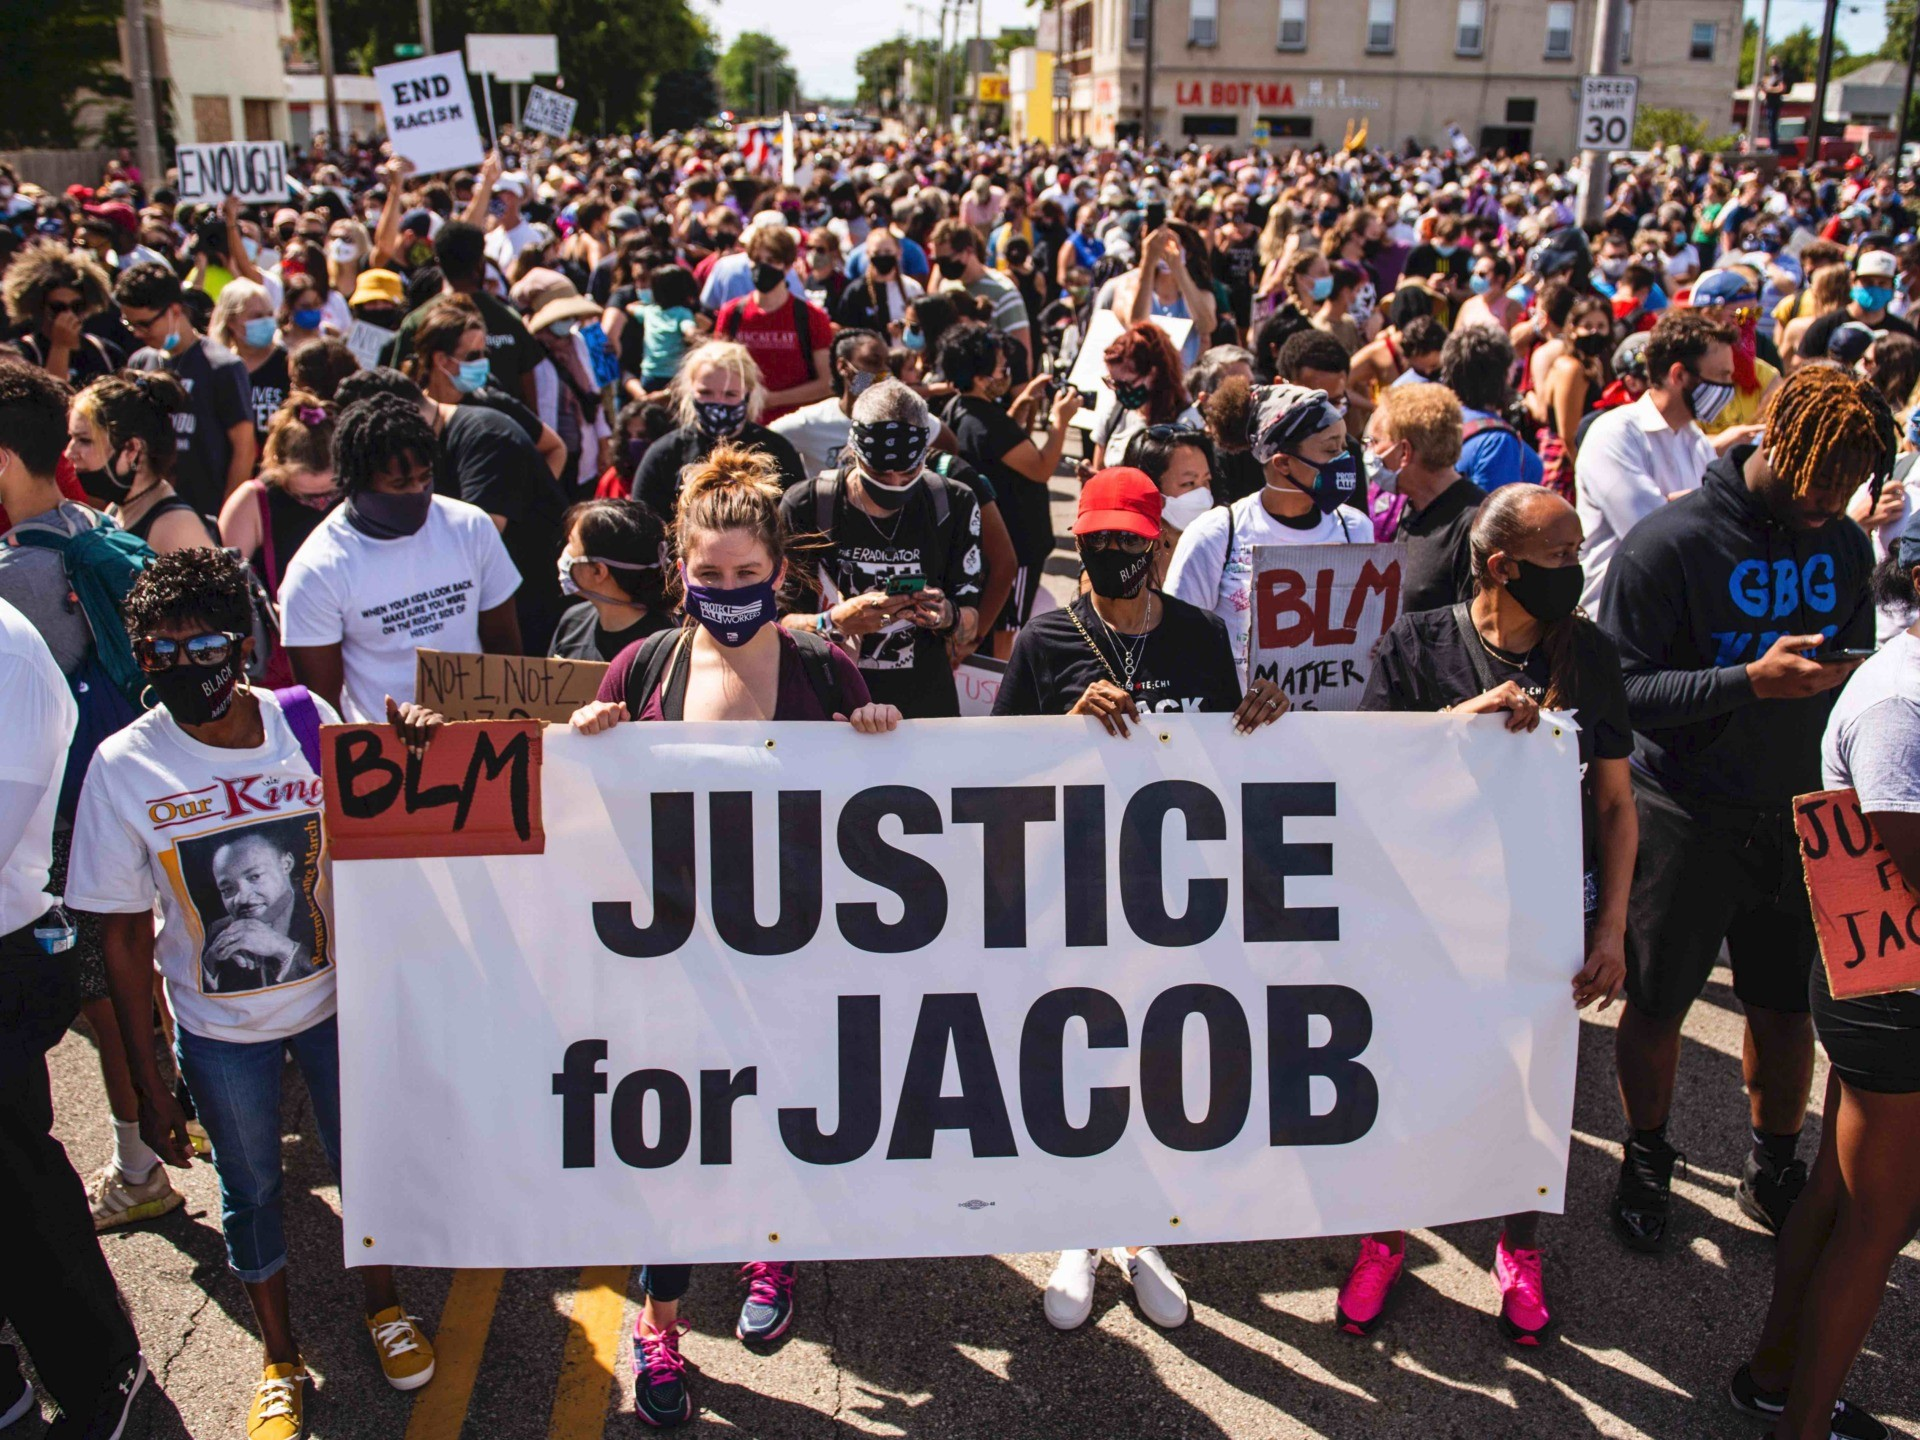 Justice for Jacob rally Kenosha (Stephen Maturen / AFP / Getty)